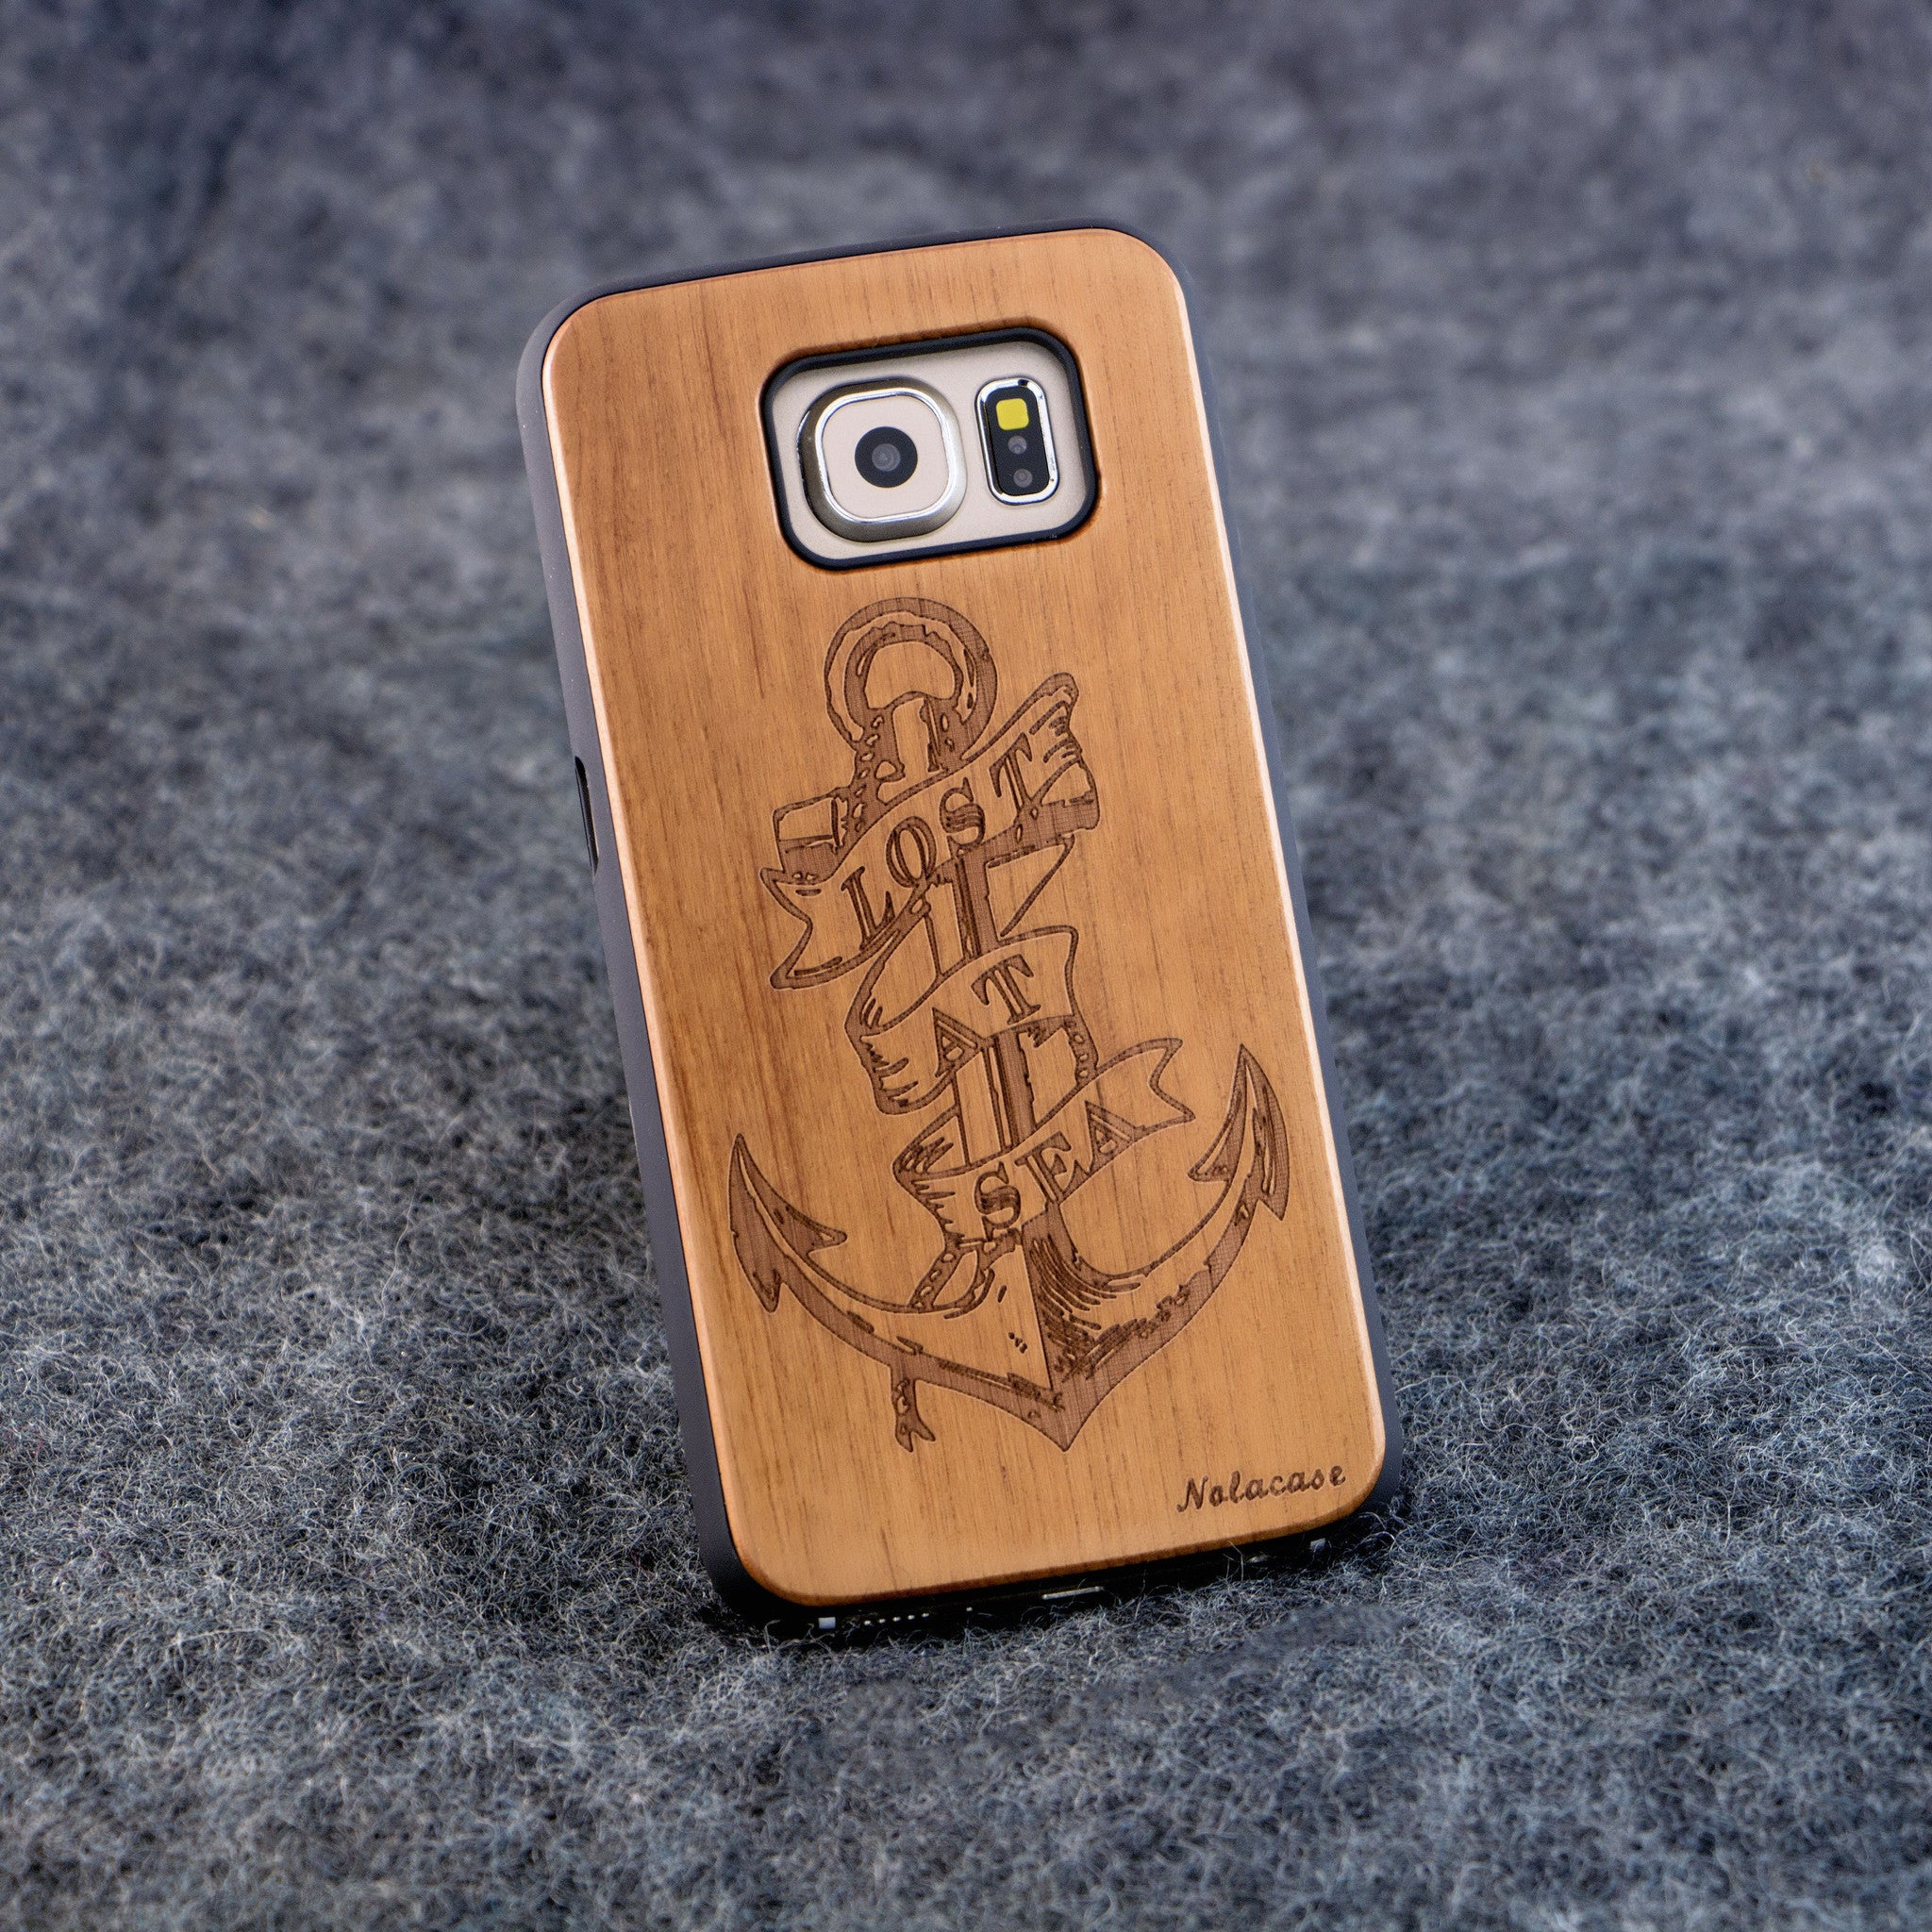 Samsung S6 Lost at Sea Slim Wood Case - NOLACASE